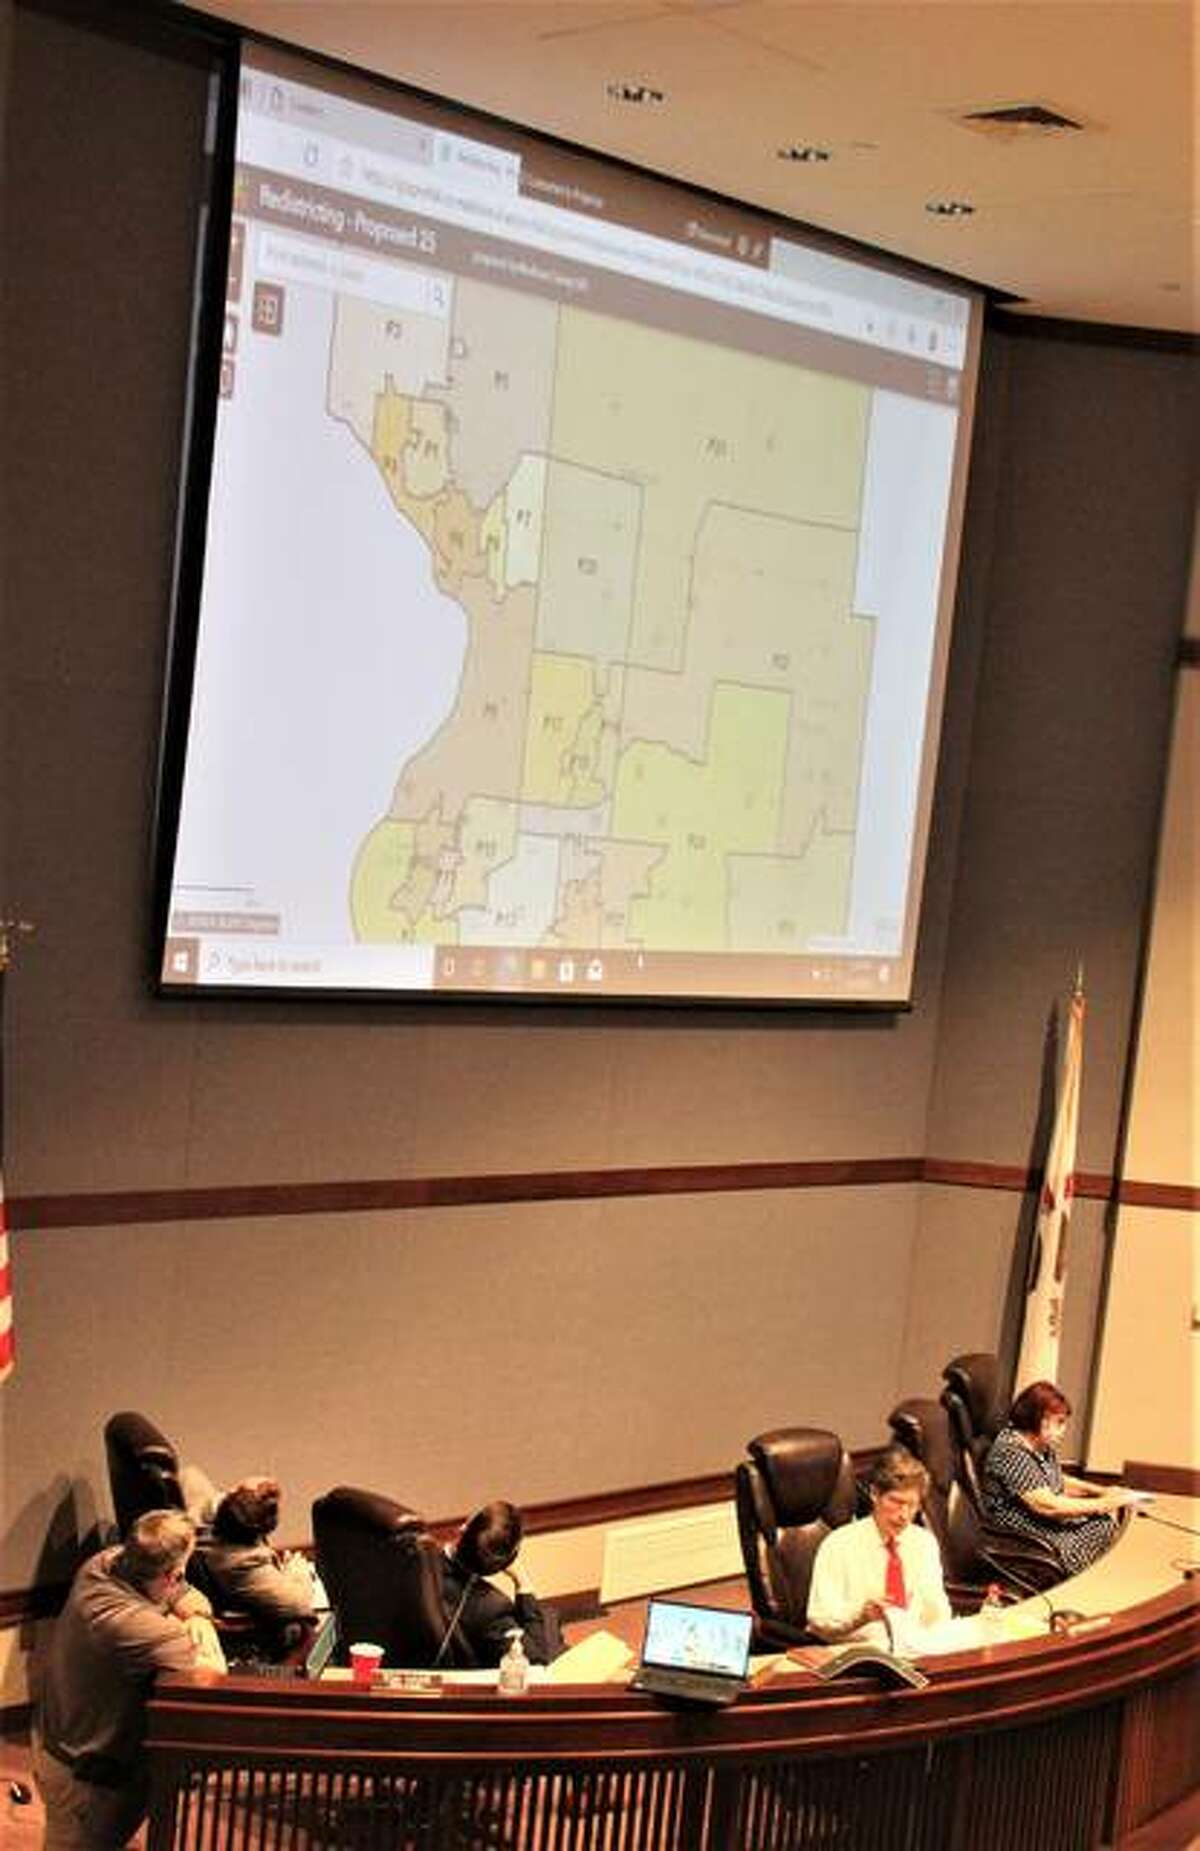 Madison County Board members discuss a proposed redistricting map during a special meeting in early May. The map would have reduced the number of board seats to 25 from the current 29, but was soundly defeated.